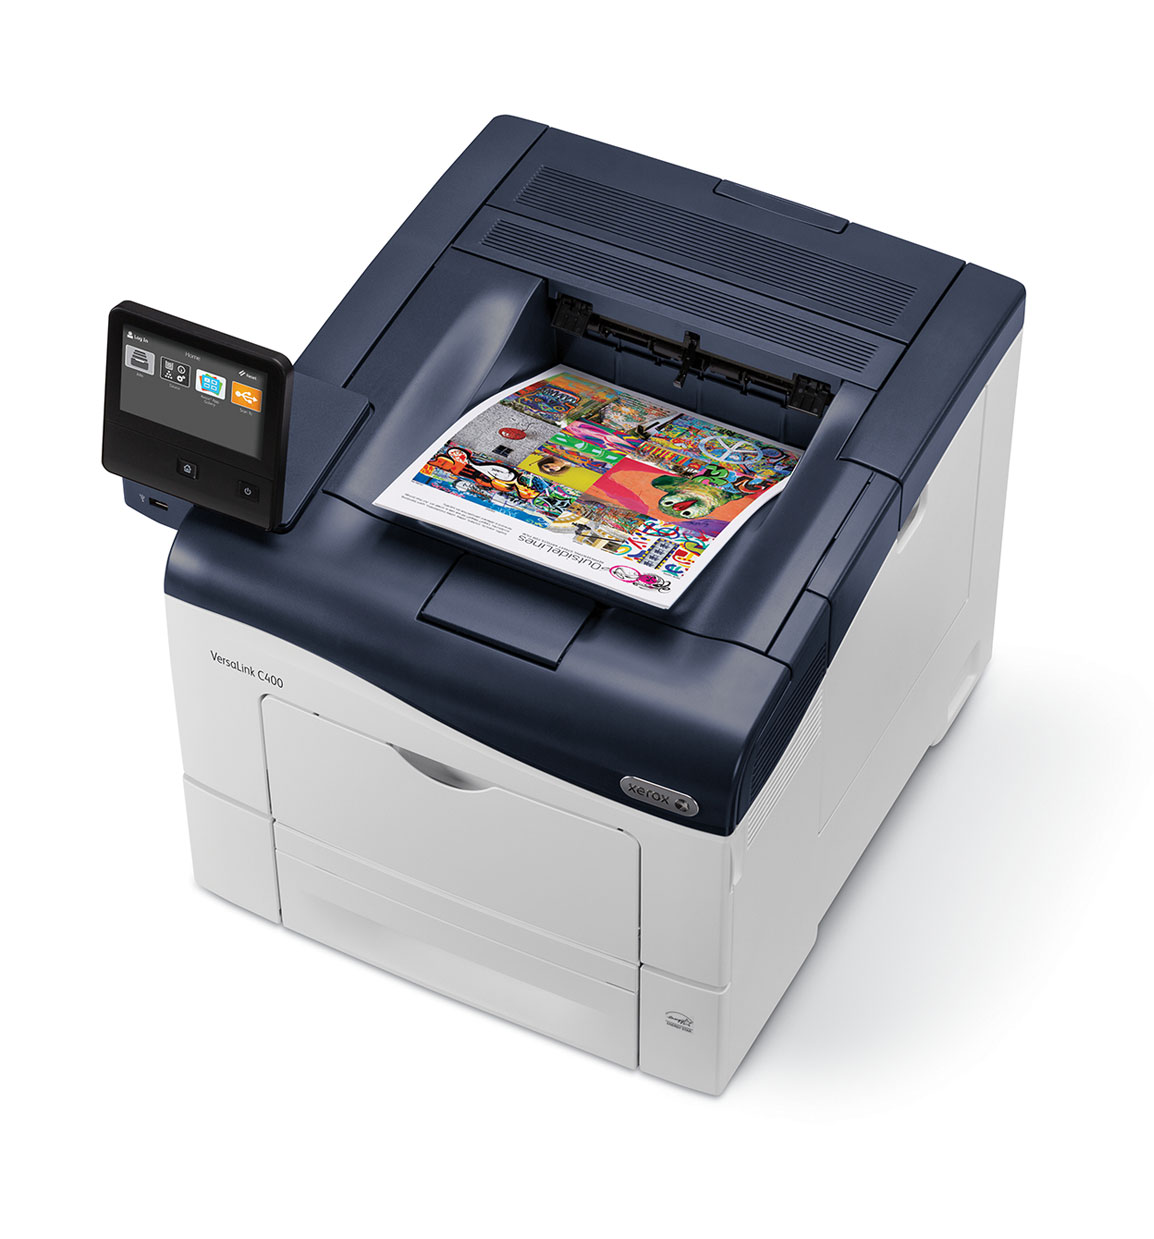 Versa link C400 with app and printed paper